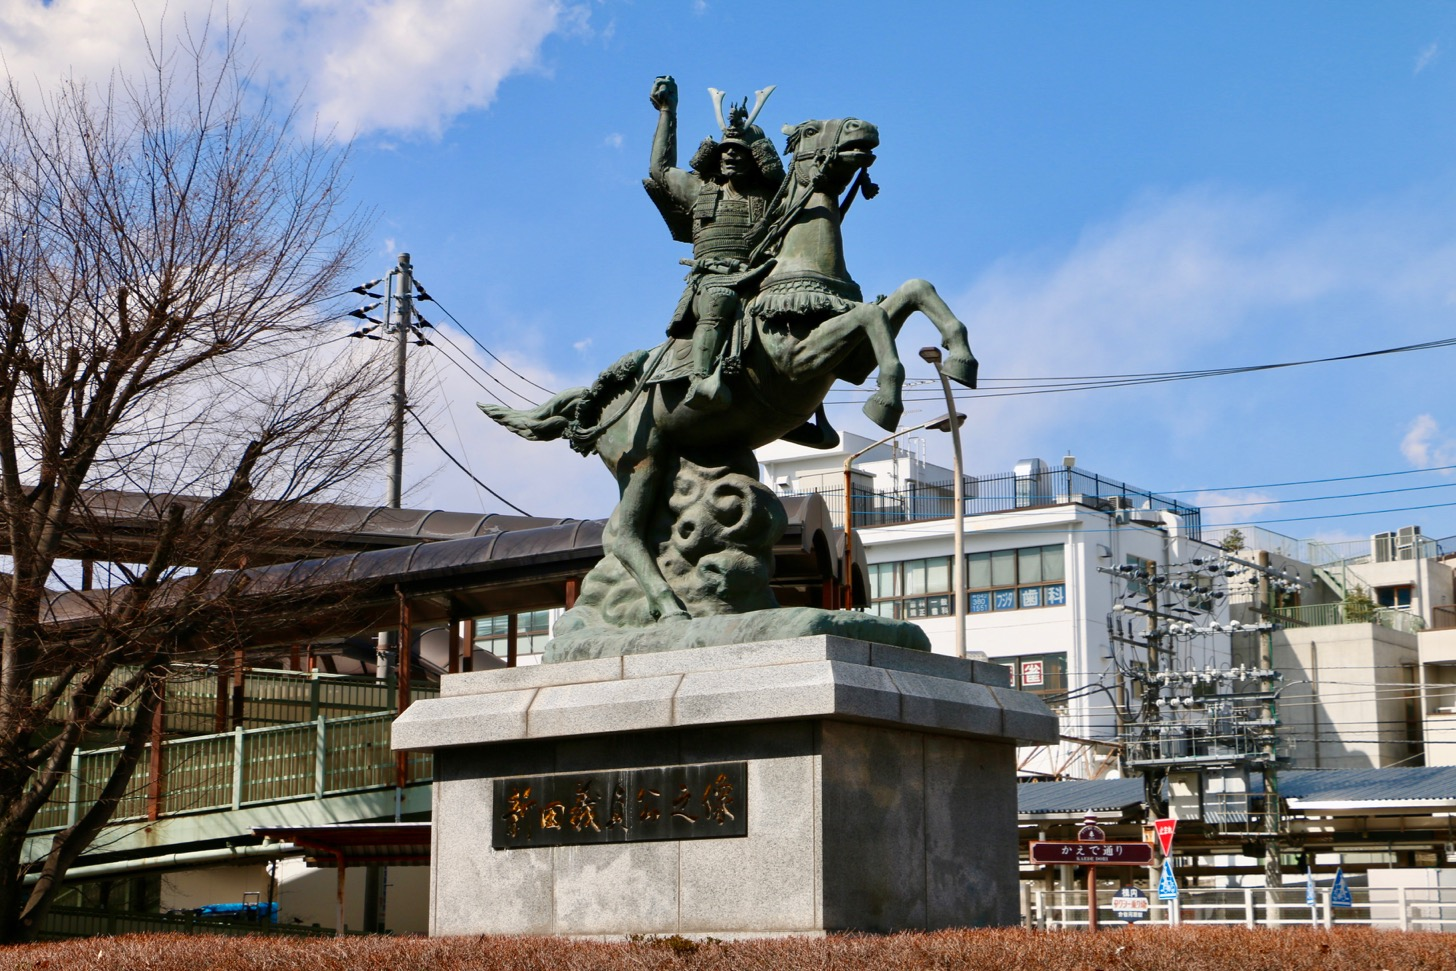 Statue of Yoshida Nitta, located in the roundabout in front of the station